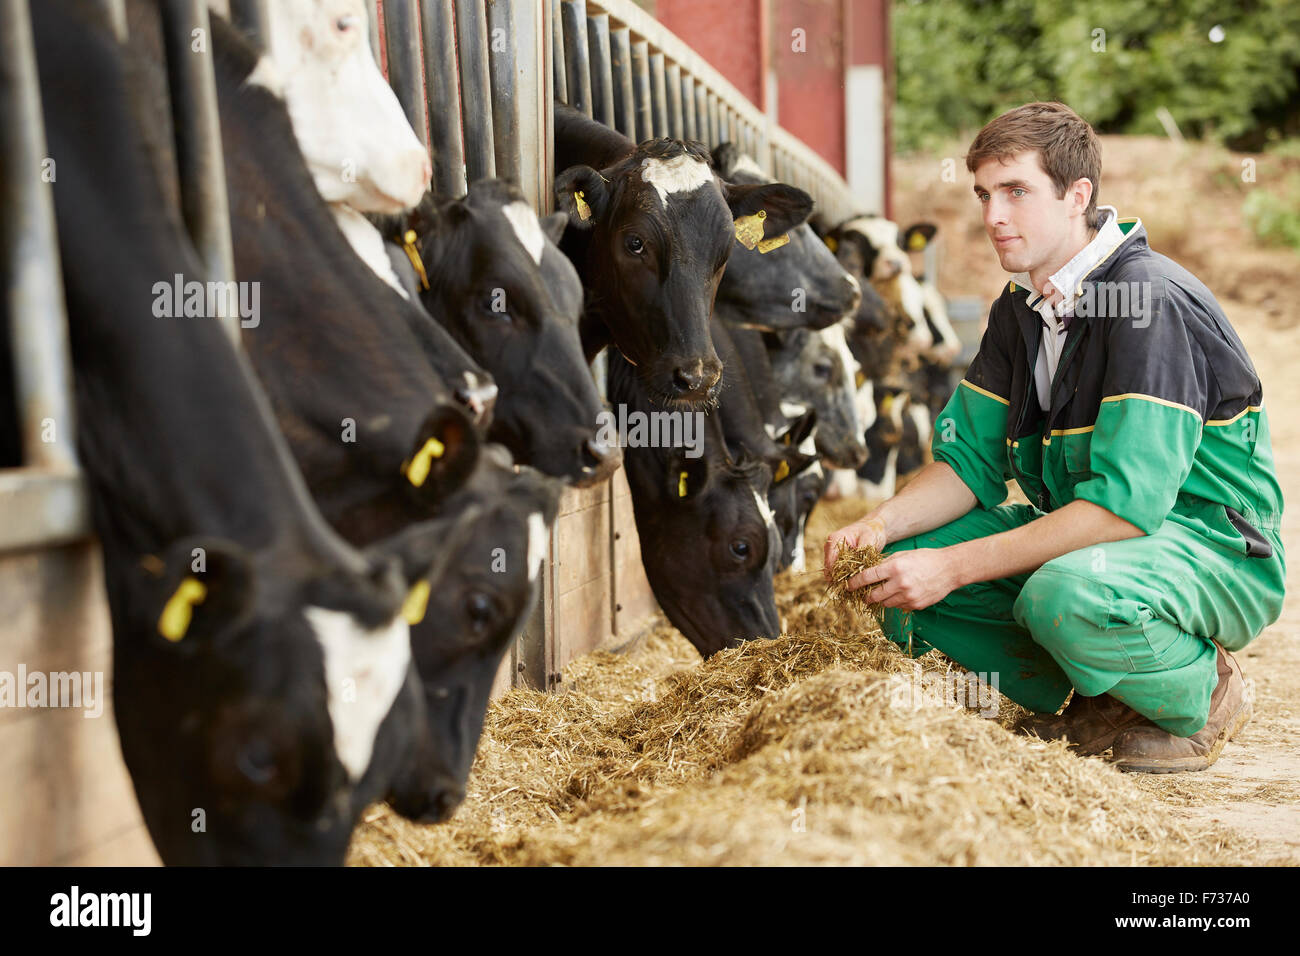 A farmer, stockman with a group of cows grazing on hay, leaning their heads through a metal barrier. - Stock Image